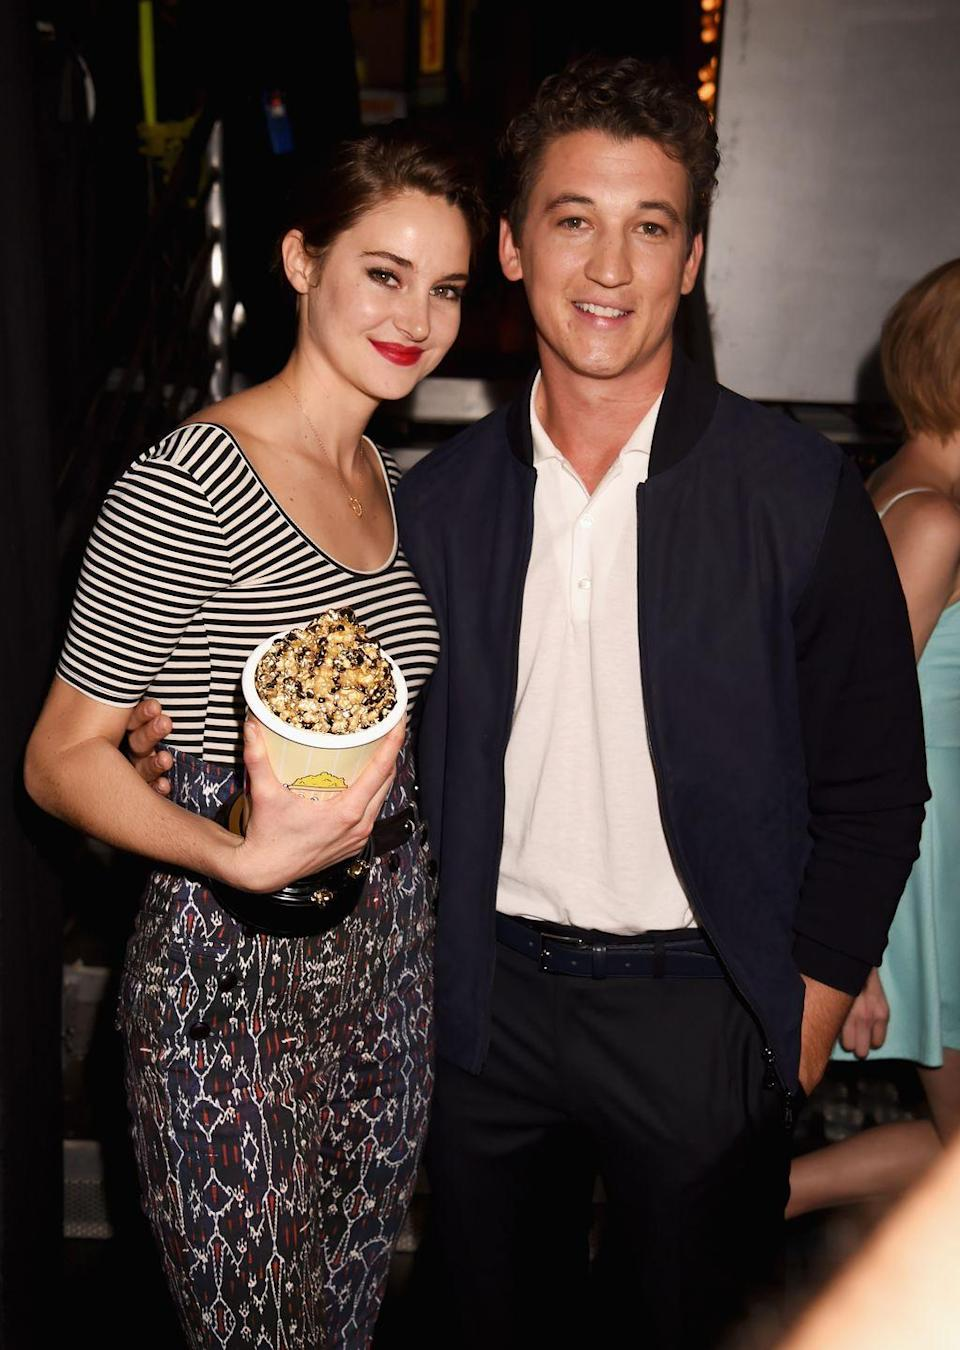 "<p>Shailene Woodley's low-maintenance, earthy tendencies are infamous. And, apparently, they impact her on-screen life as well. Just before an embrace with Miles Teller in <em>The Spectacular Now</em>, Woodley chowed down on Chinese dirt supplements, which Teller calls a pouch of dirt. <a href=""https://www.vulture.com/2013/07/shailene-woodley-not-a-fan-of-gatorade-breath.html"" rel=""nofollow noopener"" target=""_blank"" data-ylk=""slk:He says"" class=""link rapid-noclick-resp"">He says</a> that it ""smelled like crap."" Can't imagine that it tasted much better.</p>"